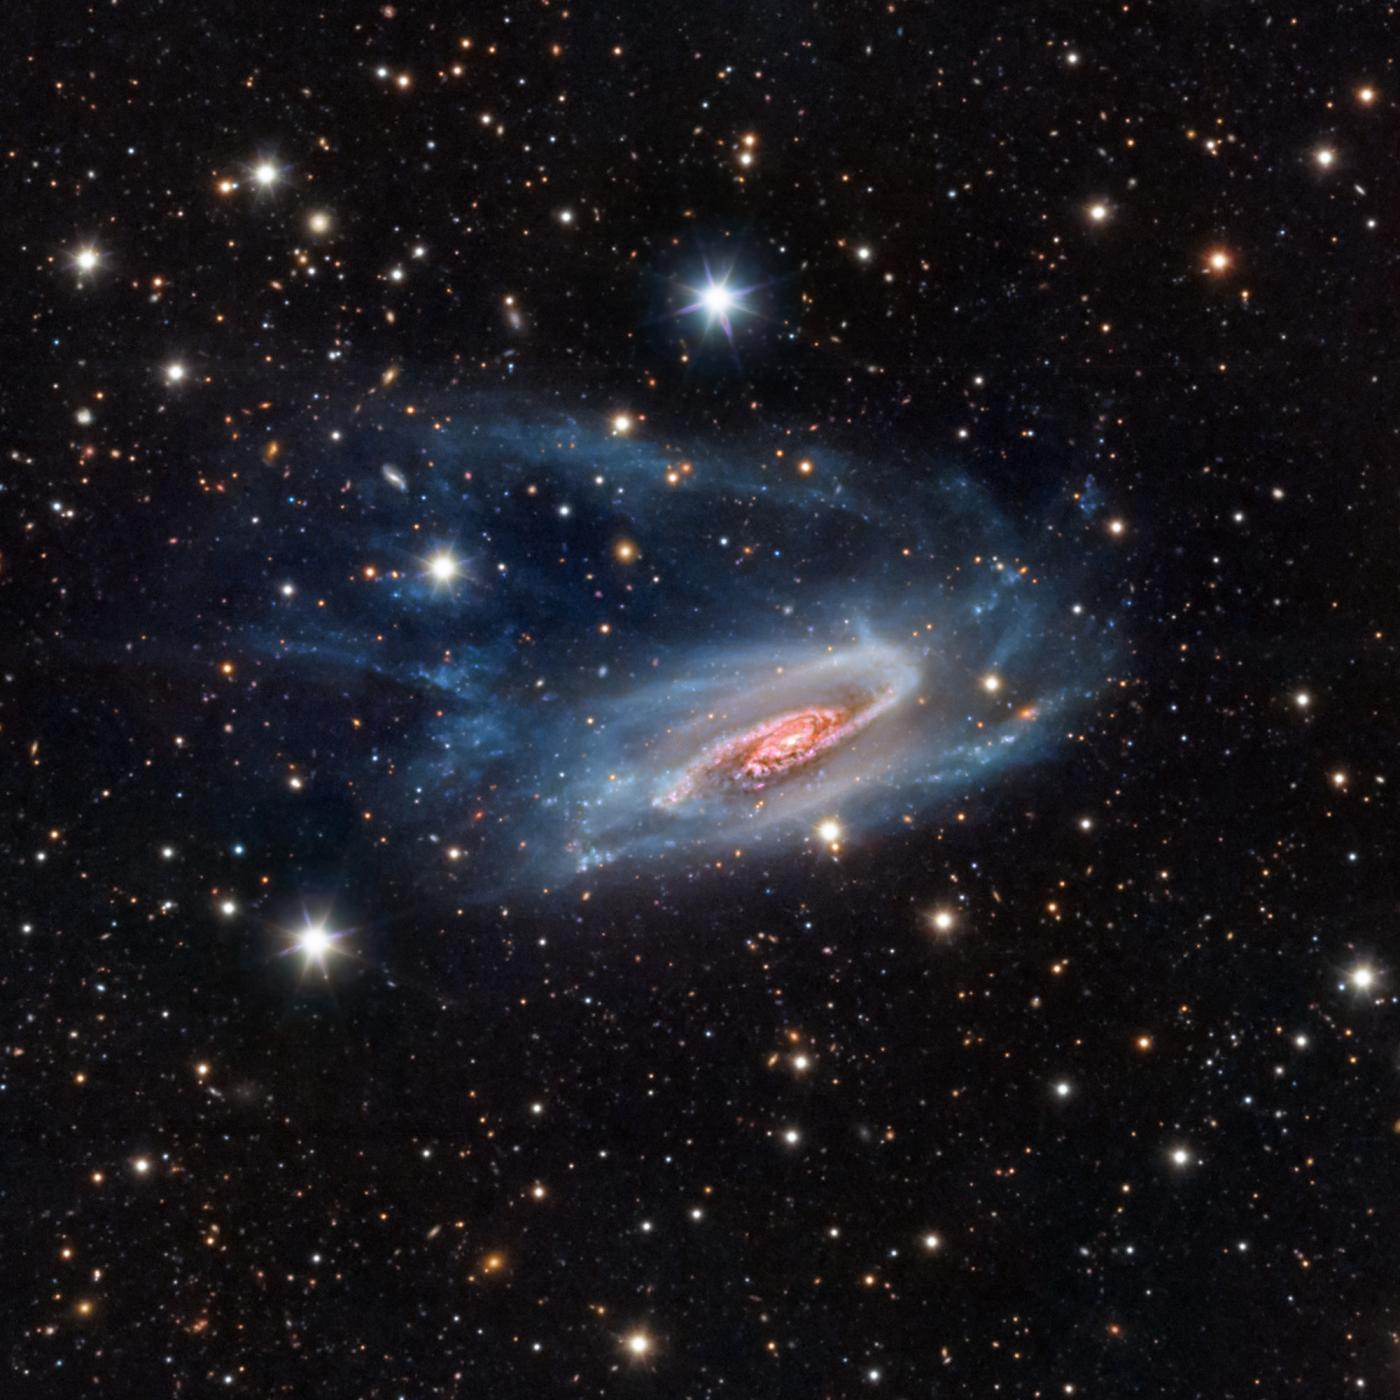 An image showing 'NGC 3981'